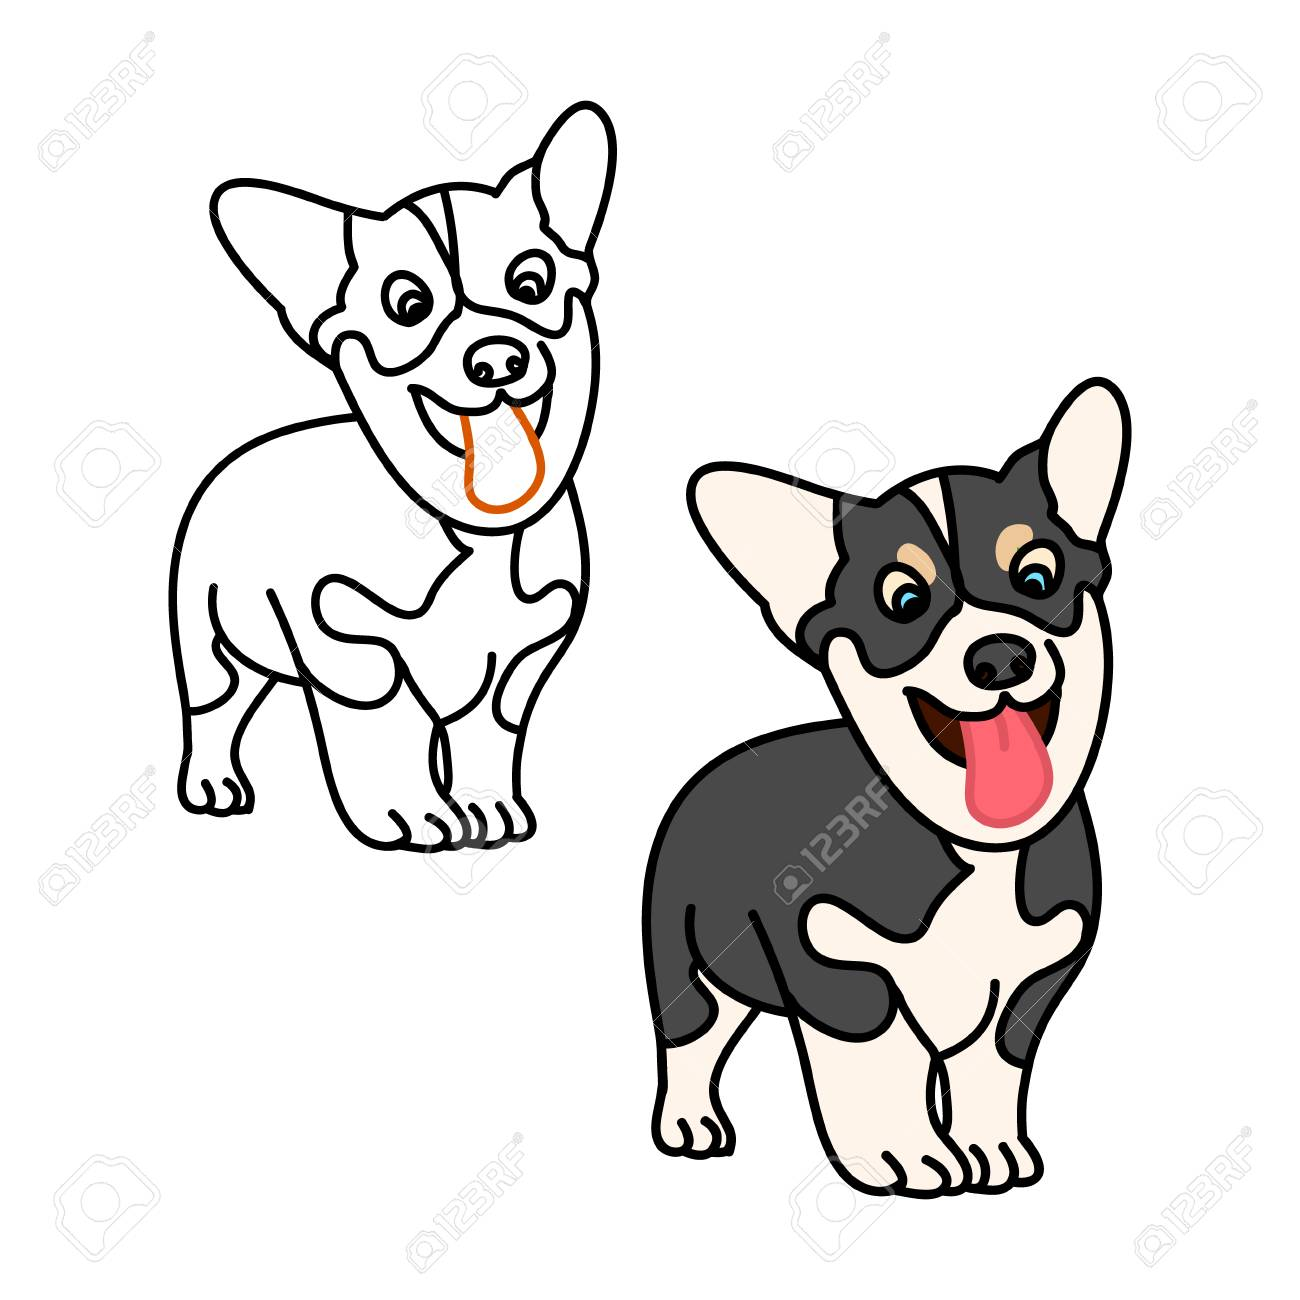 Puppy Corgi On White Background Contour Drawing Dog Vector Illustration Royalty Free Cliparts Vectors And Stock Illustration Image 81312374